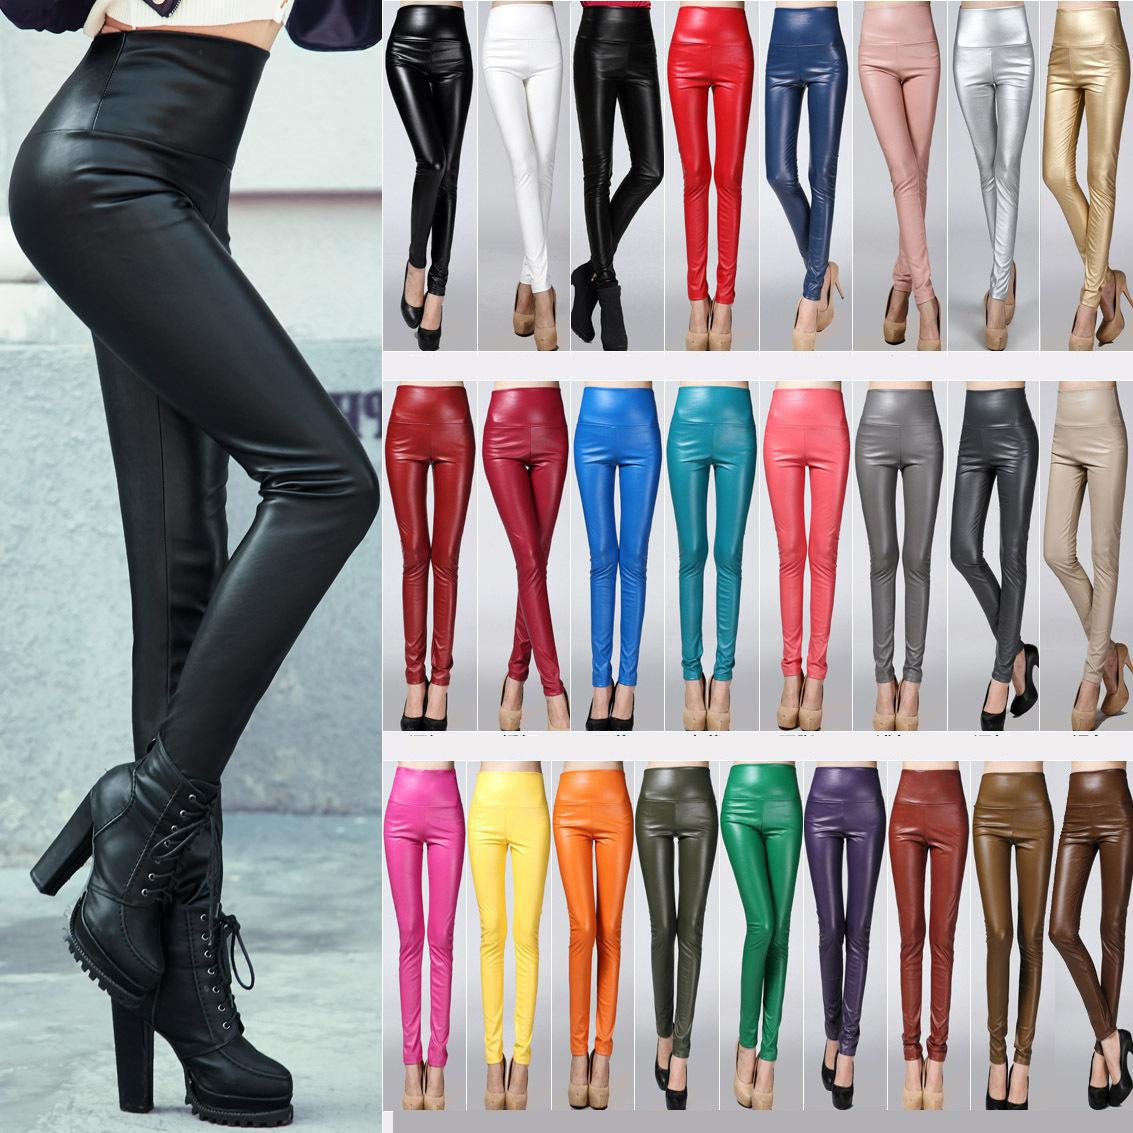 2019 Available Winter And Autumn New Arrival Leather Leggings High Waist Woman Leggings High Quality Legging Femme Free Shipping